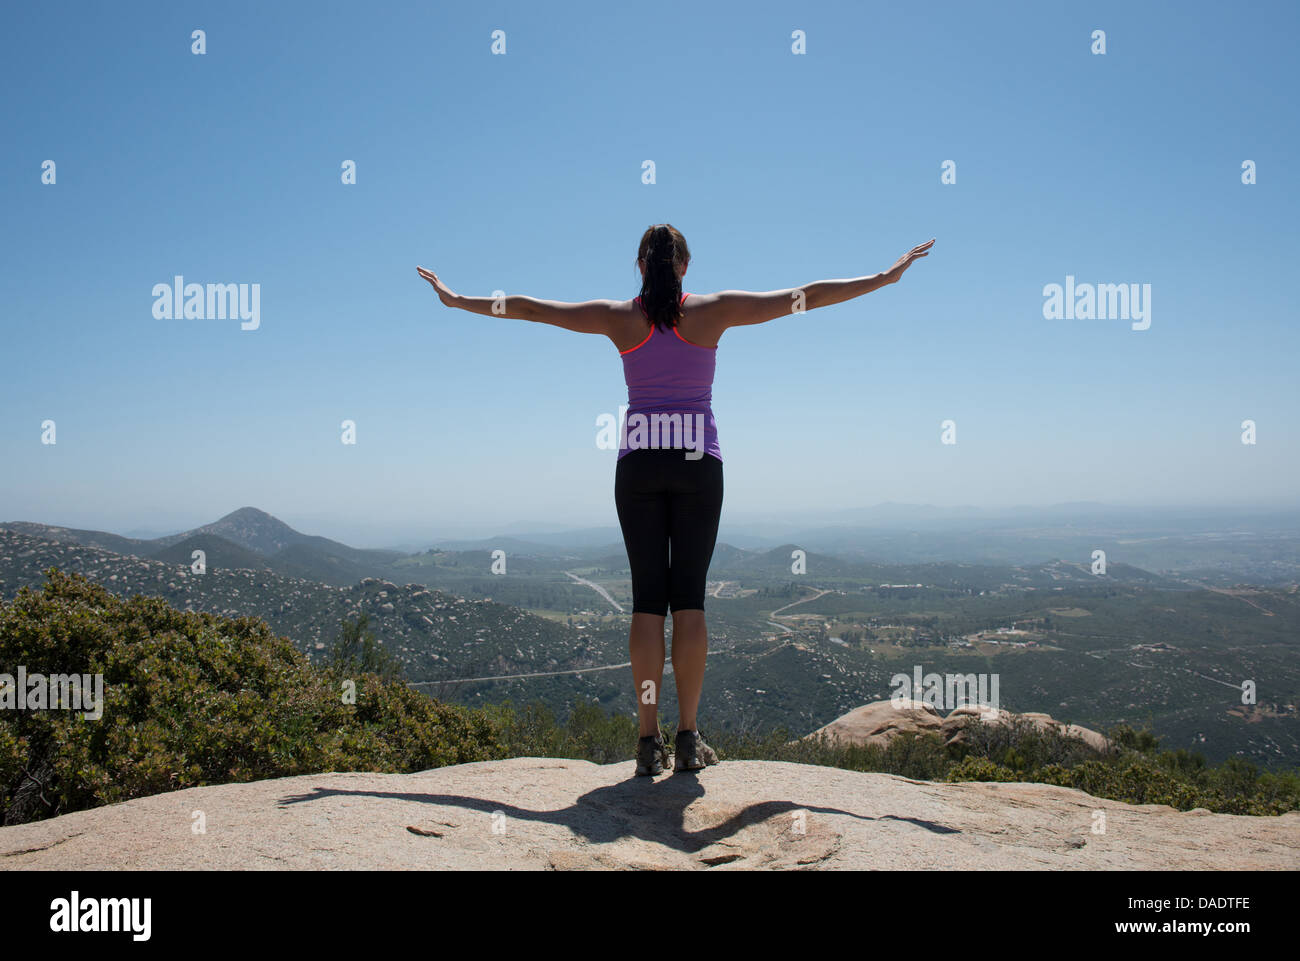 Woman with outstretched arms overlooking view of San Diego, California, USA - Stock Image